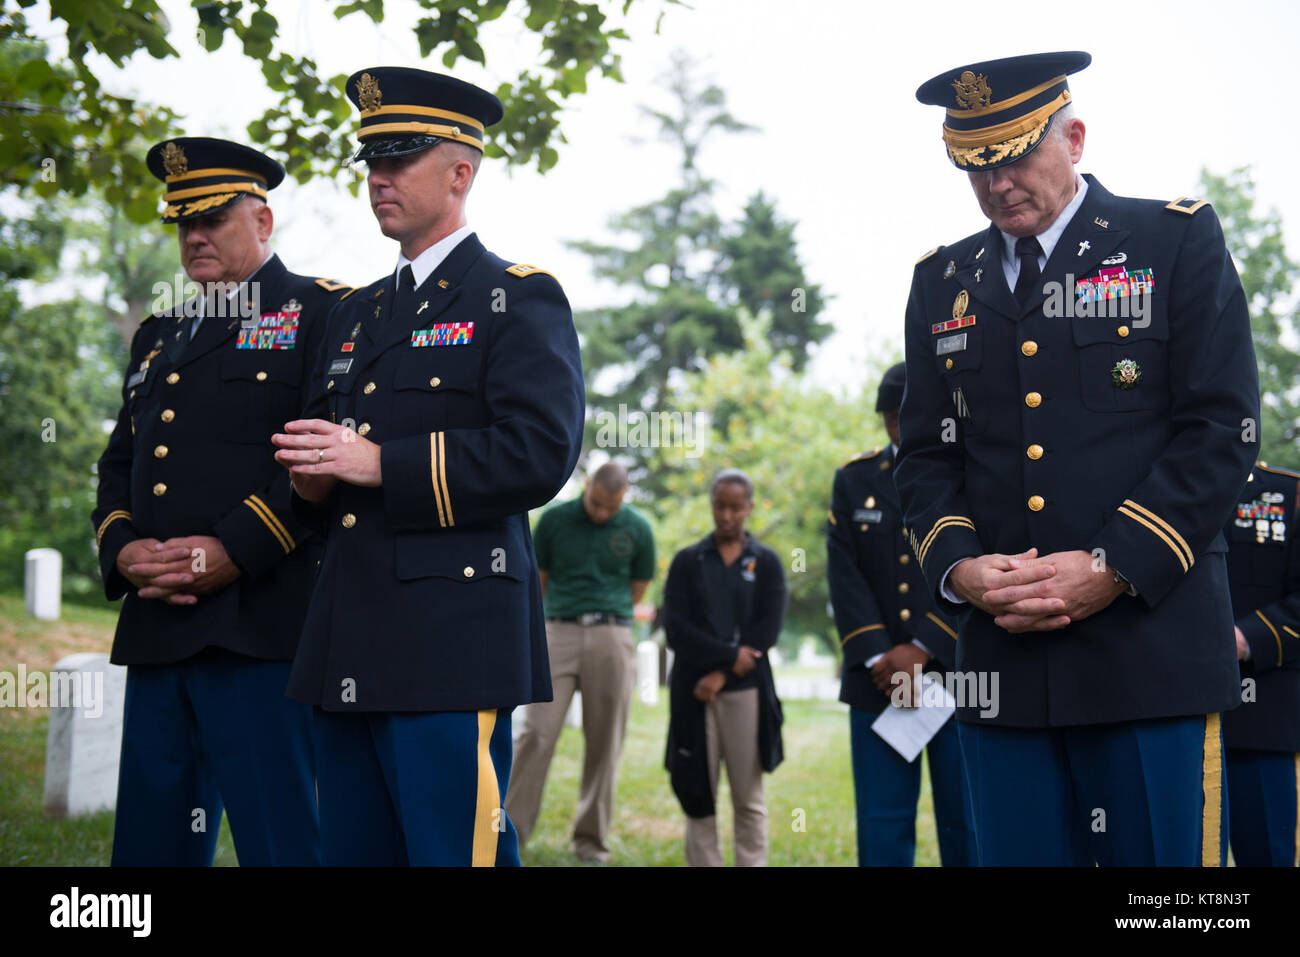 U s navy chief of chaplains stock photos u s navy chief of chaplains bow their heads during at prayer at the 242nd us army chaplain corps anniversary ceremony thecheapjerseys Gallery